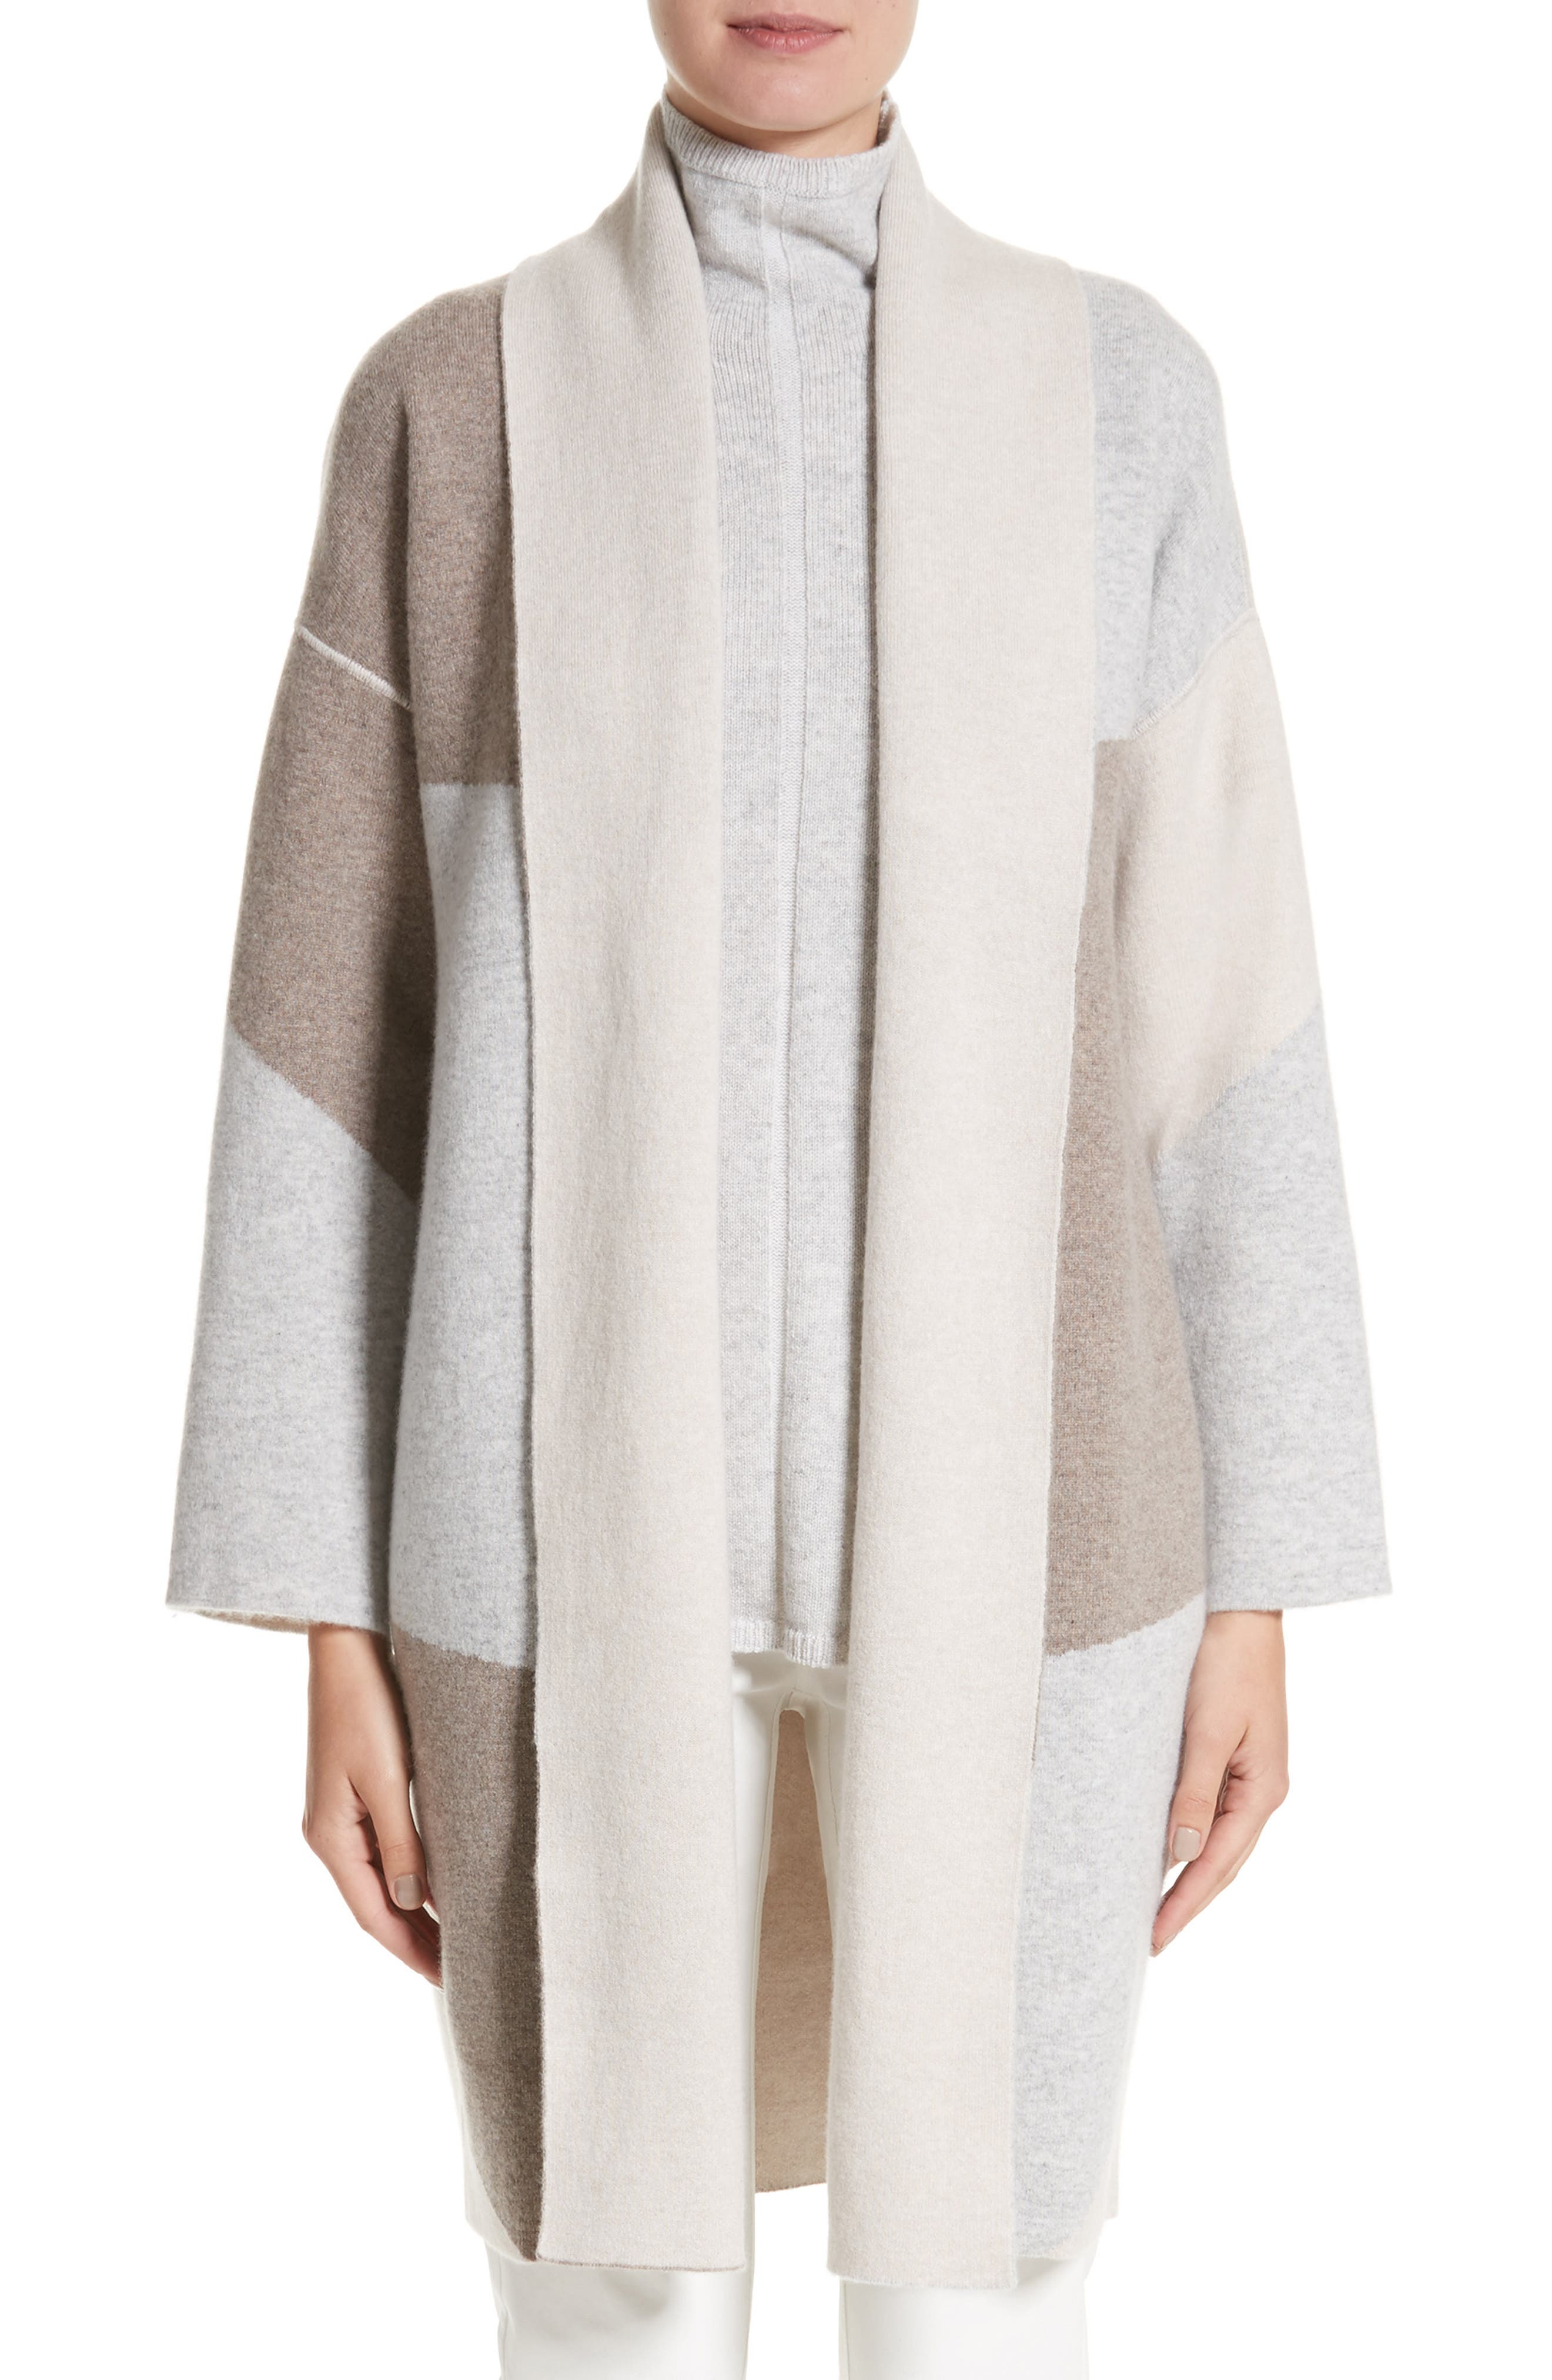 Stretch Cashmere Reversible Felted Colorblock Cardigan,                         Main,                         color, 020